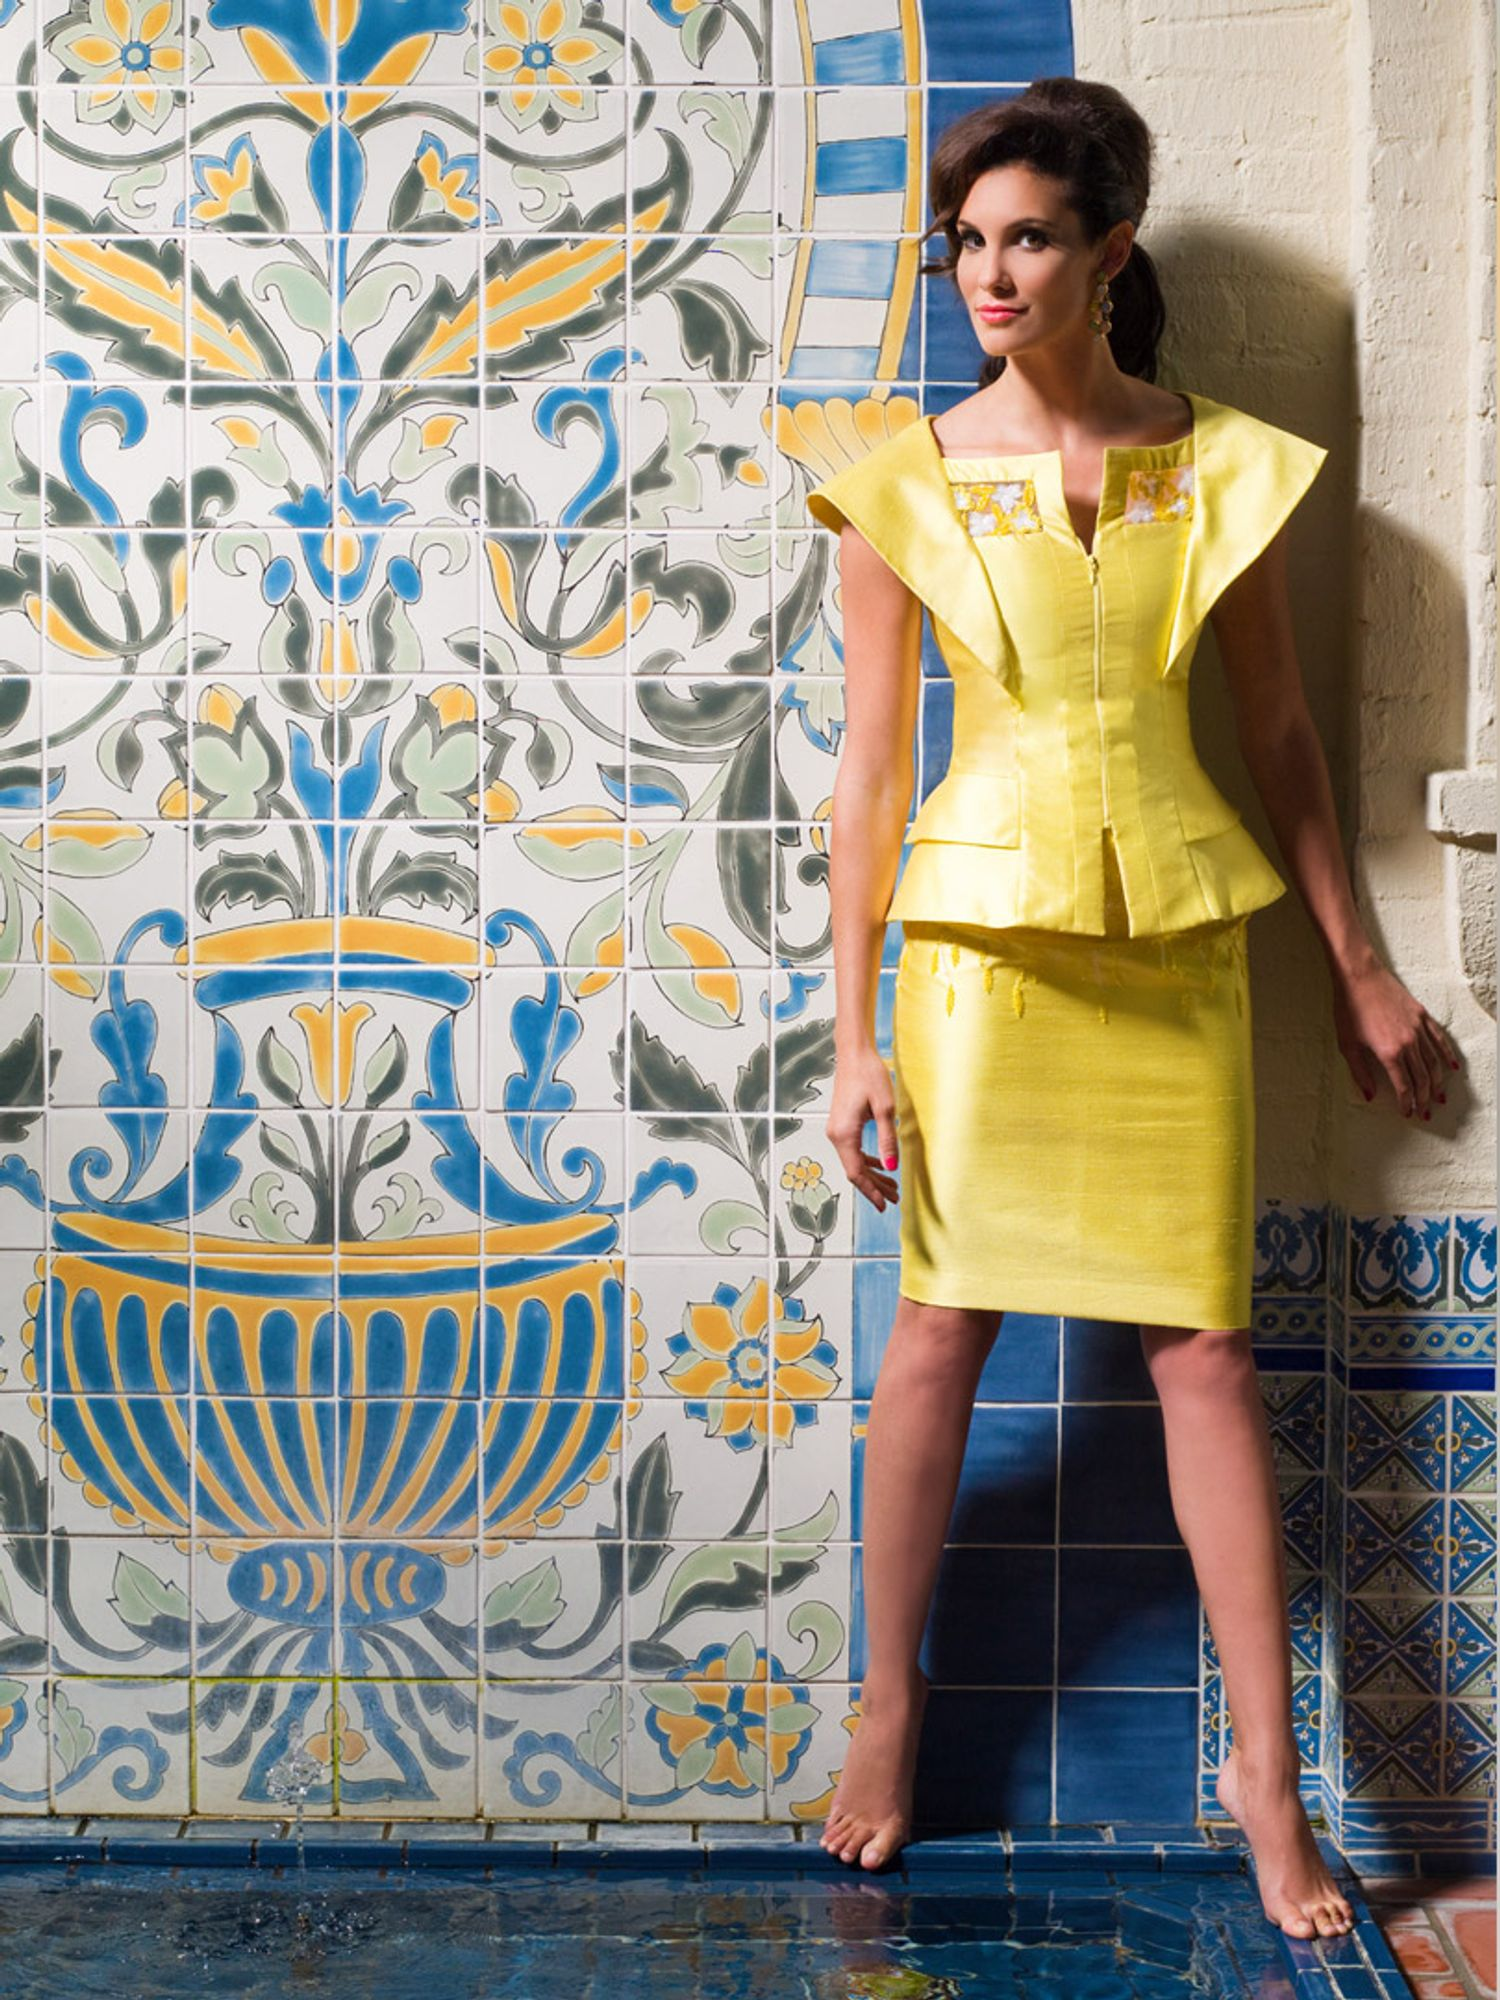 Daniela Ruah of NCIS Los Angeles in a yellow dress against blue and yellow tile